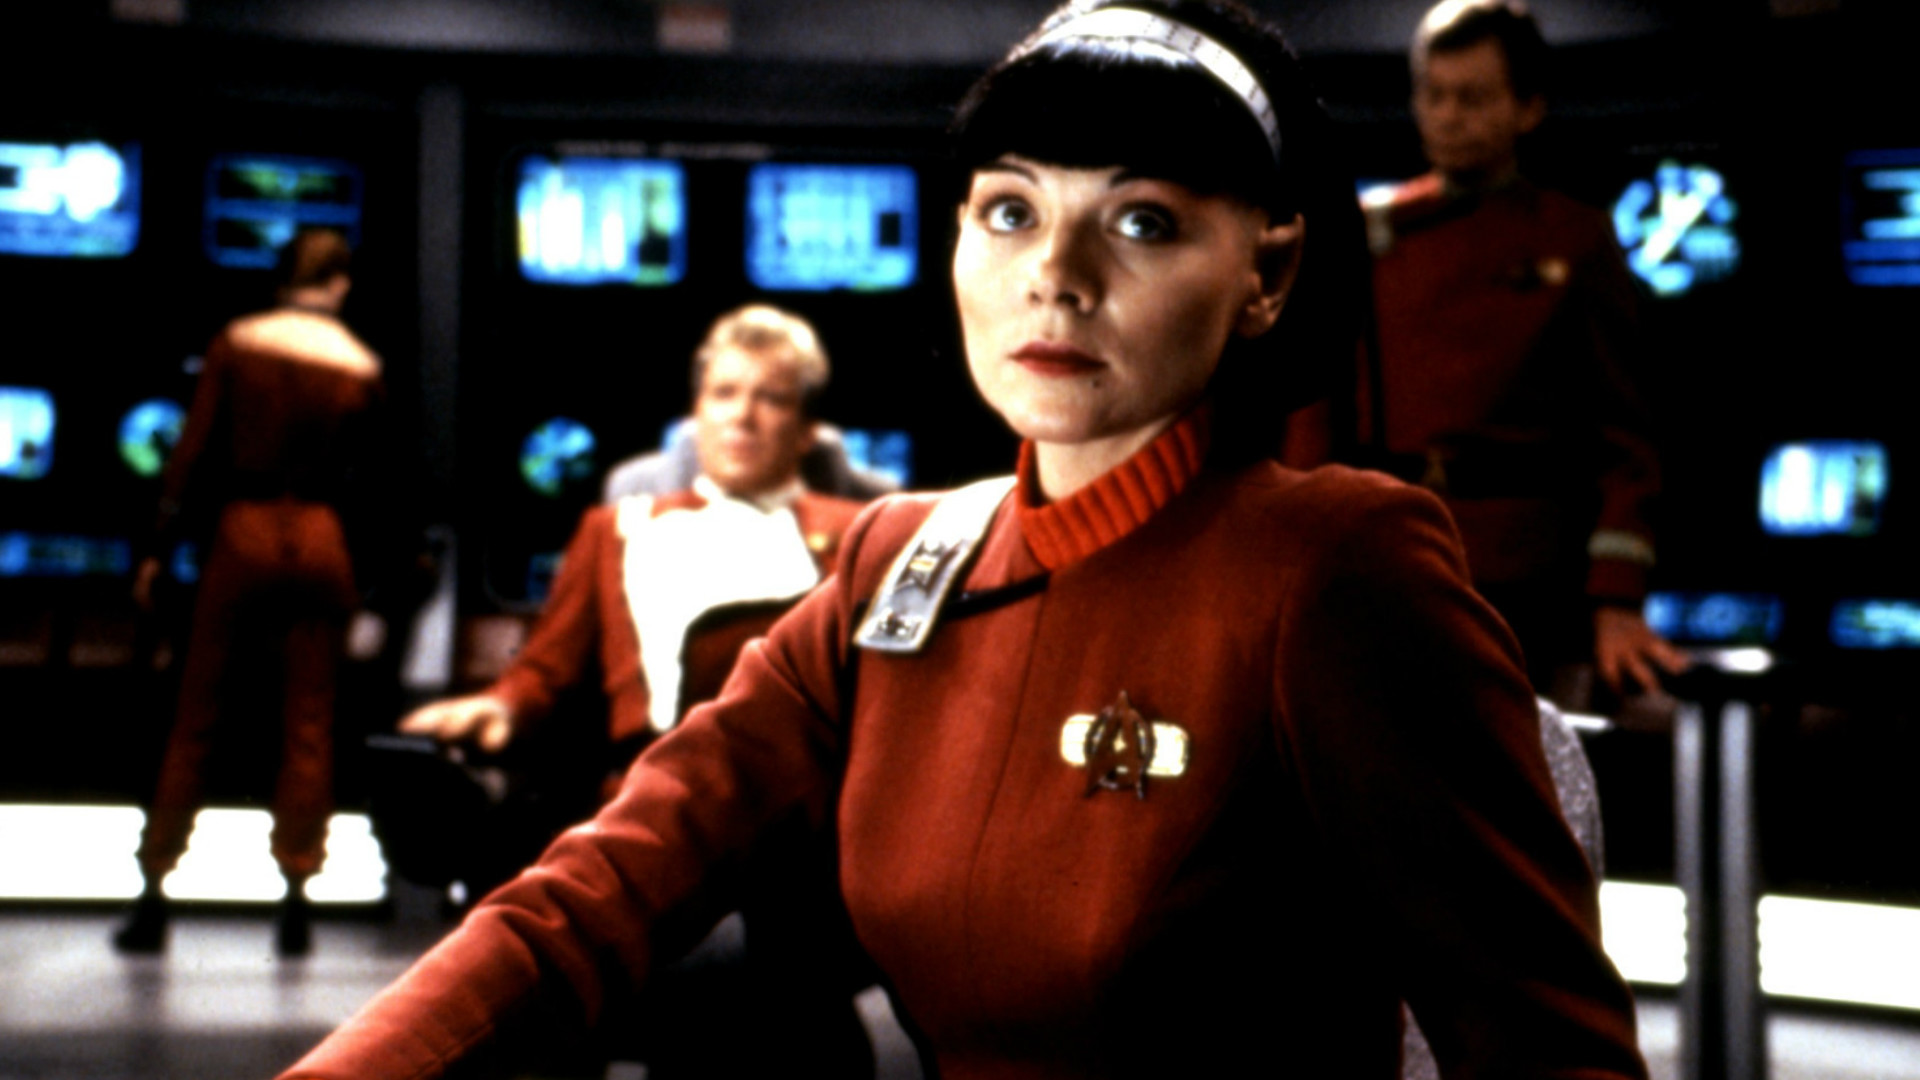 Kim Cattrall in Star Trek